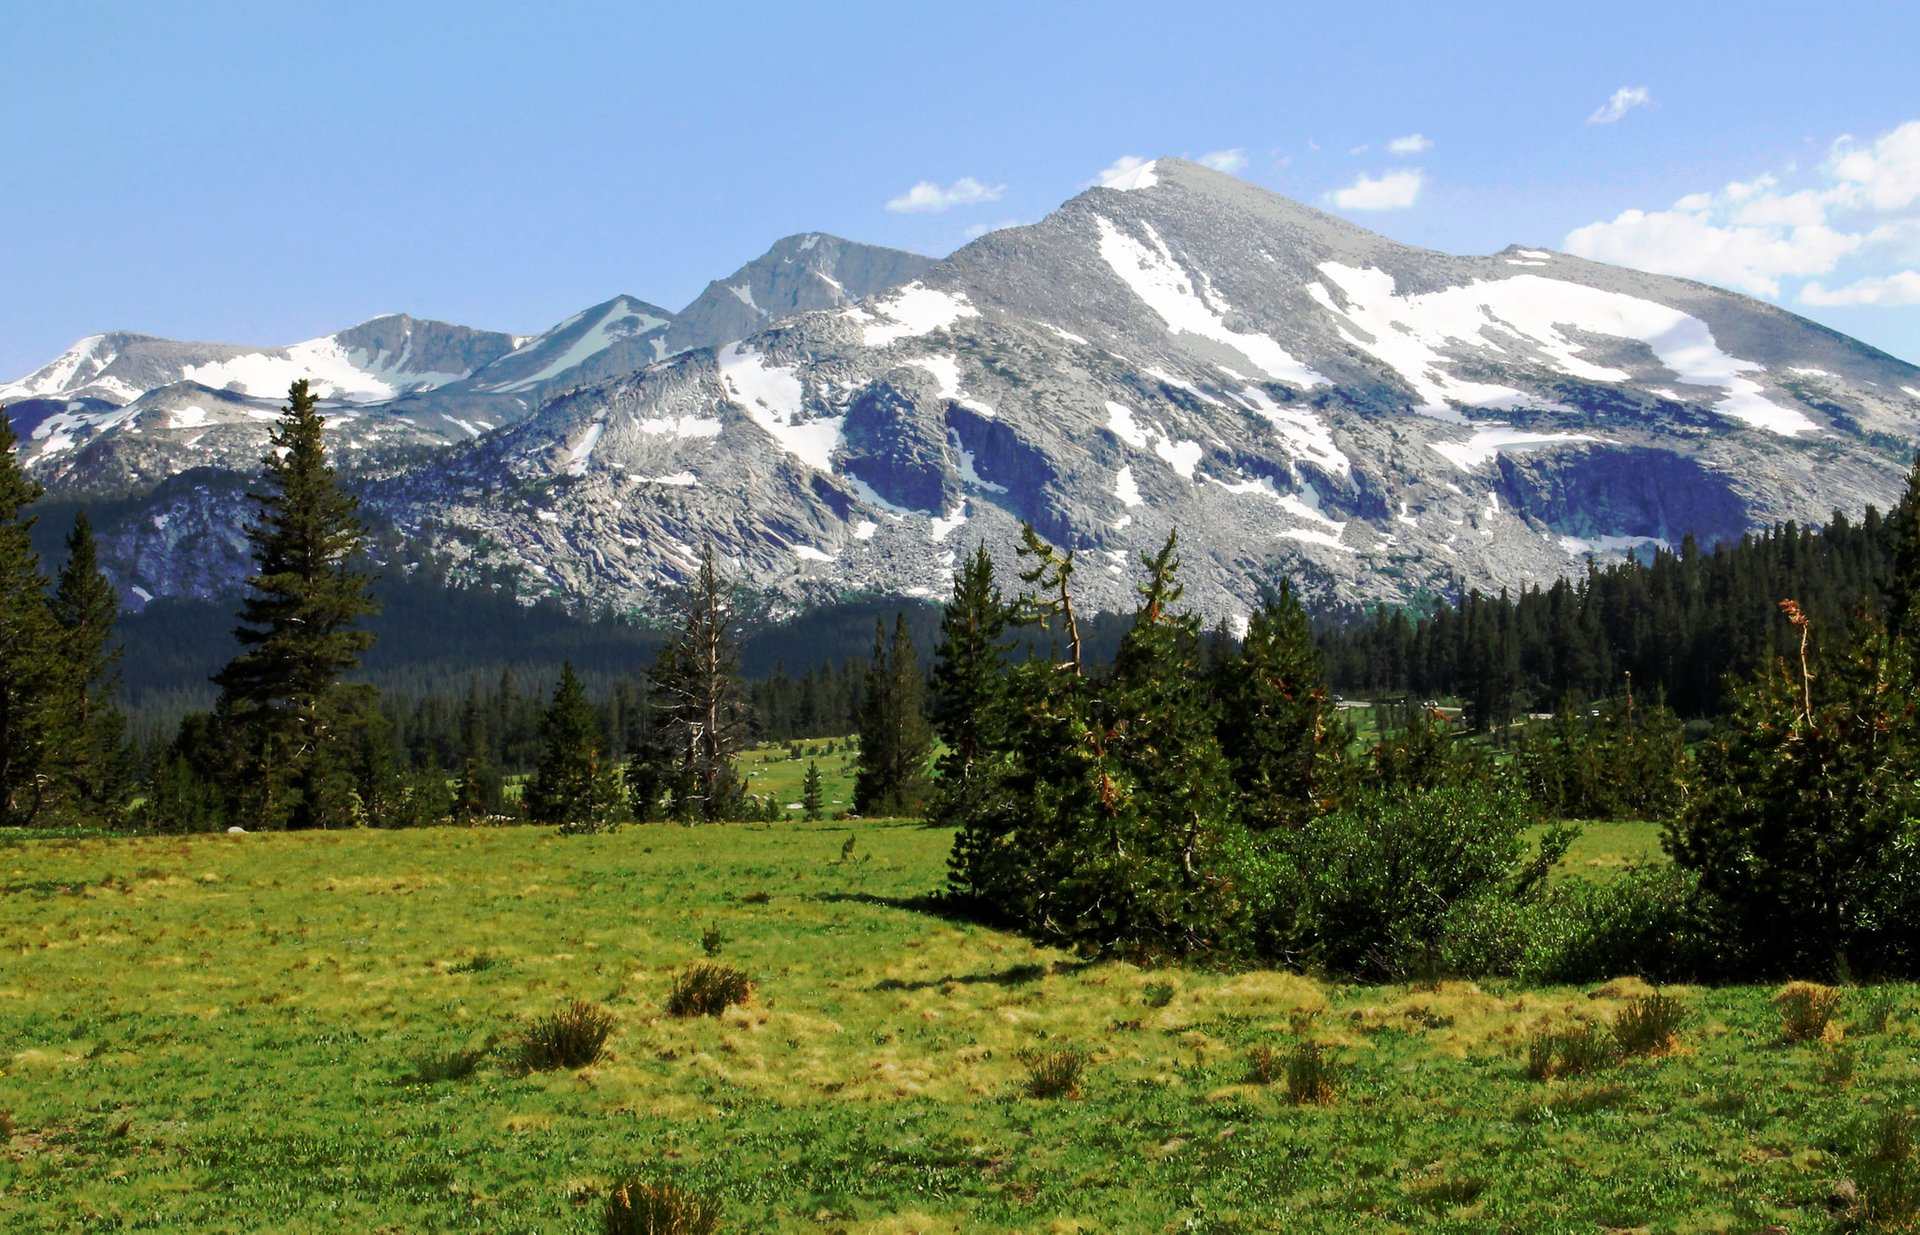 Tuolumne Meadows in Yosemite - Best Season 2020